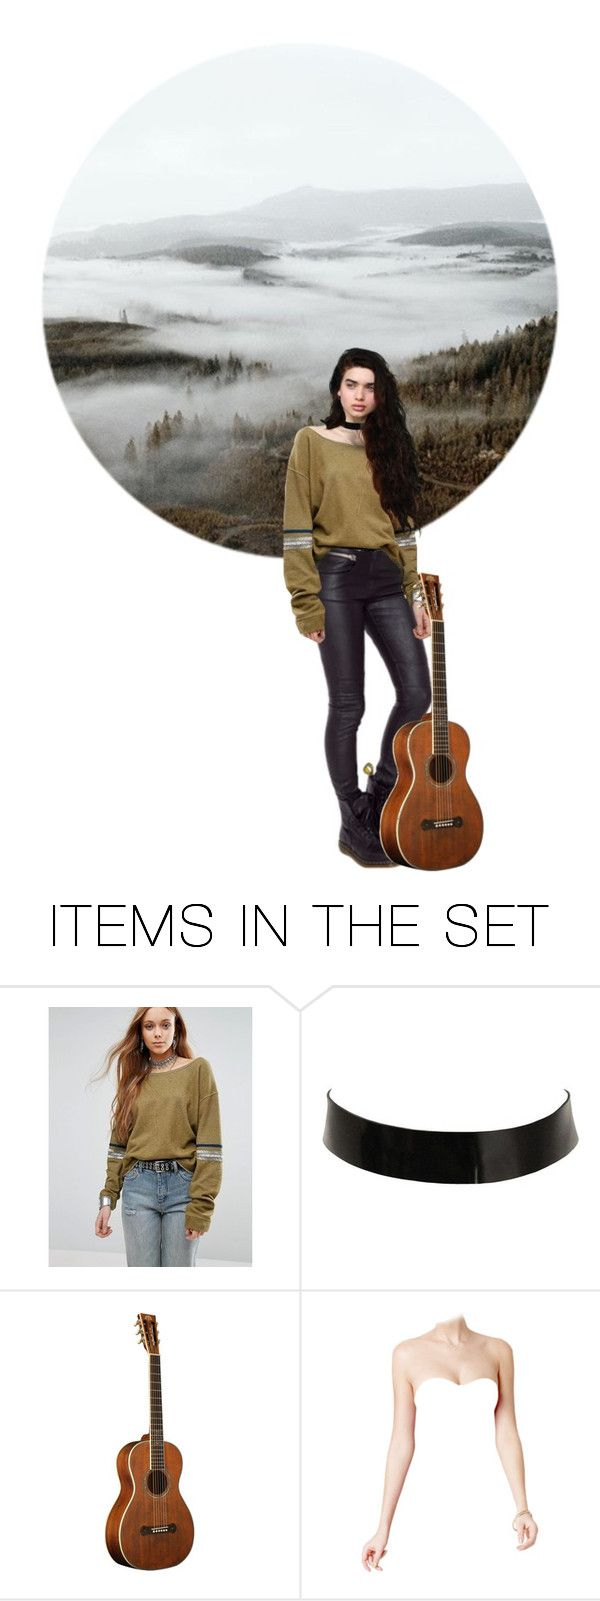 """""""[ TW ] TBF"""" by inviting-oblivion ❤ liked on Polyvore featuring art"""